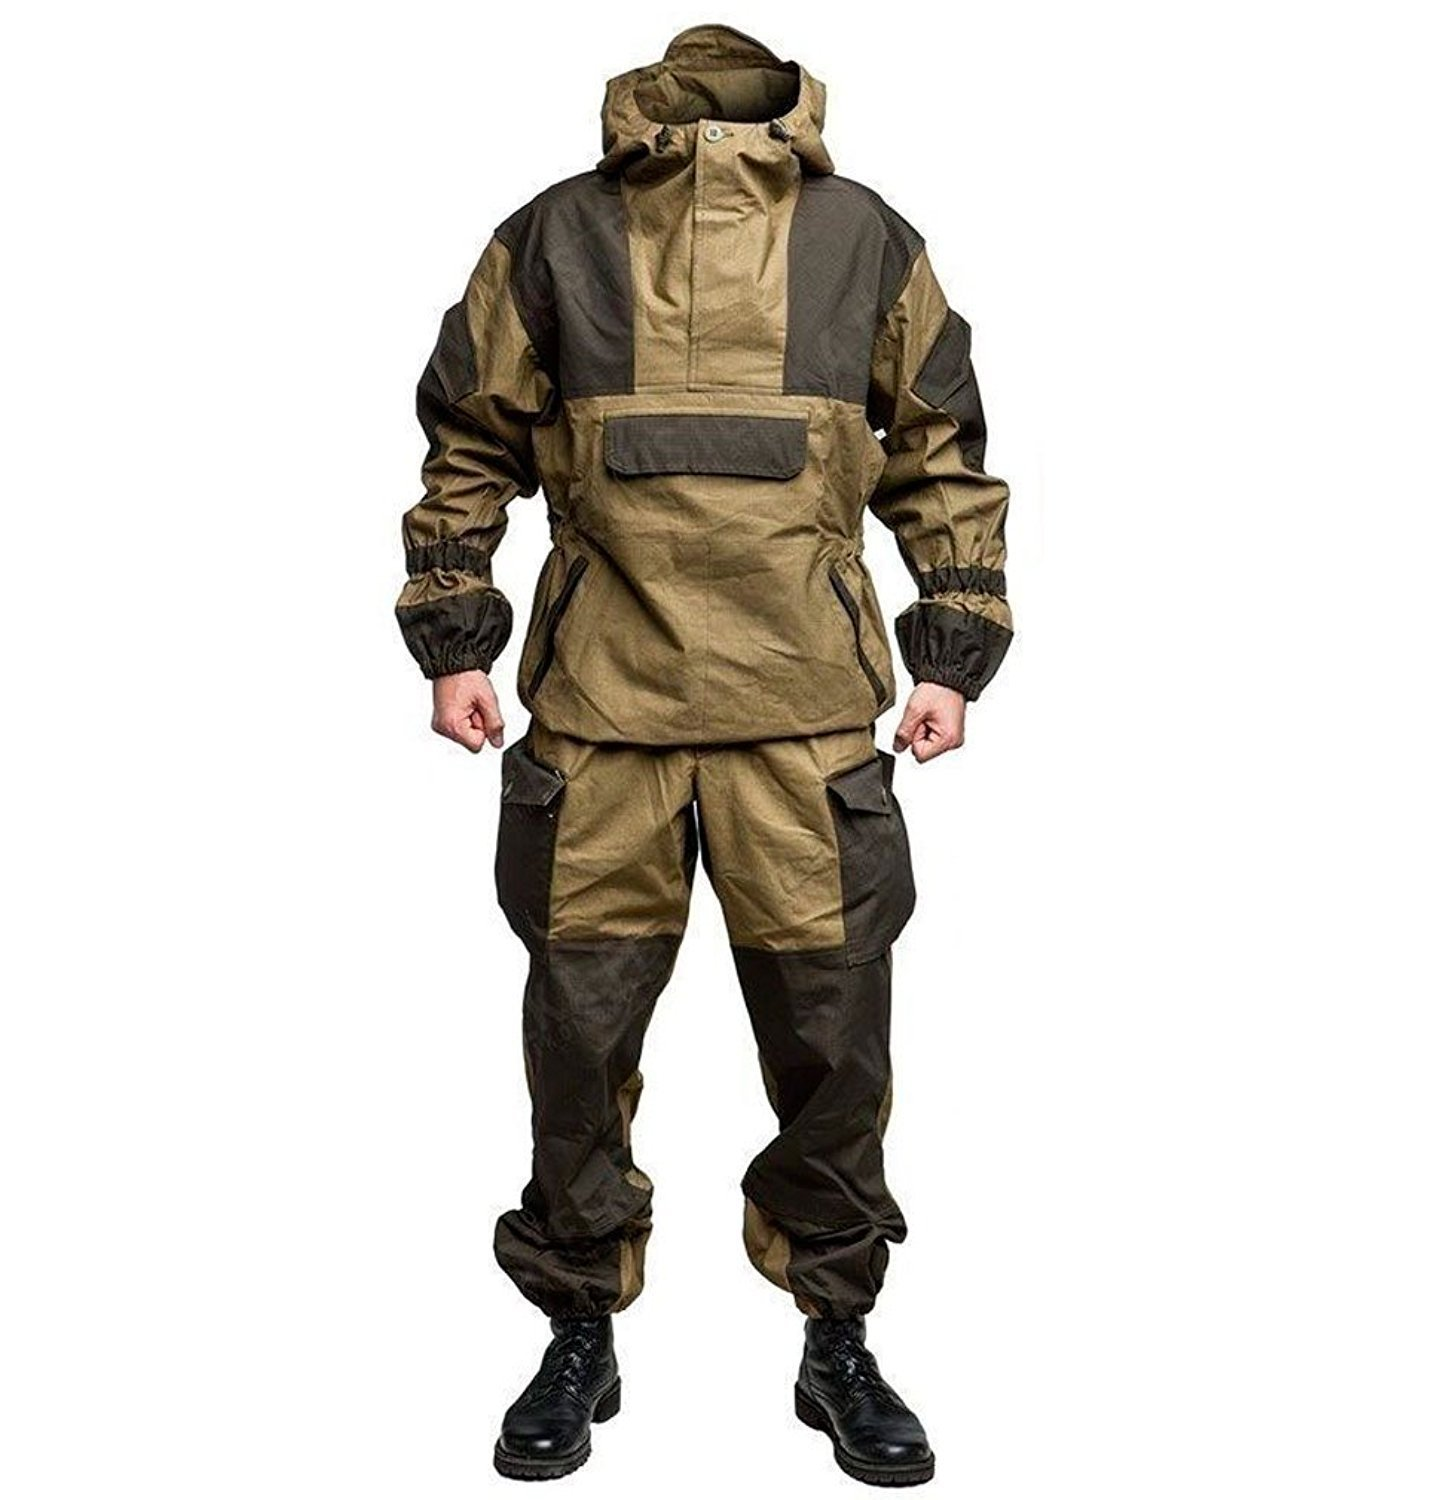 Bars GORKA-4 Genuine Russian Army Special Military BDU Uniform Camo Hunting Suit (Khaki, 64-5 Russian Size (See Chart)) by Bars